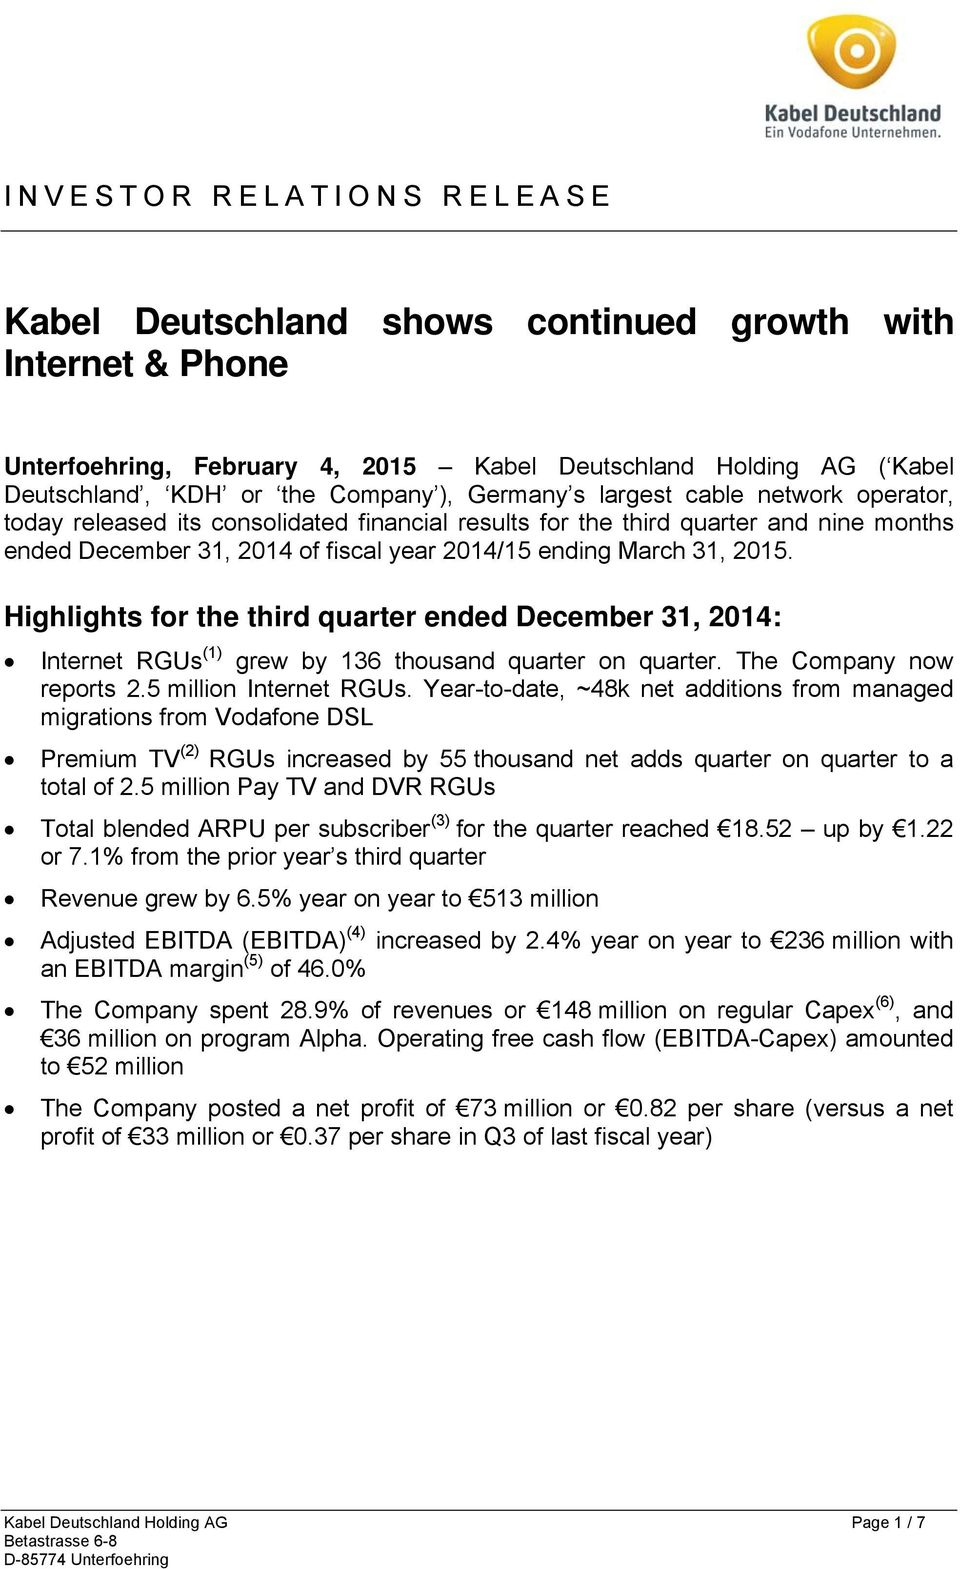 Highlights for the third quarter ended December 31, 2014: Internet RGUs (1) grew by 136 thousand quarter on quarter. The Company now reports 2.5 million Internet RGUs.